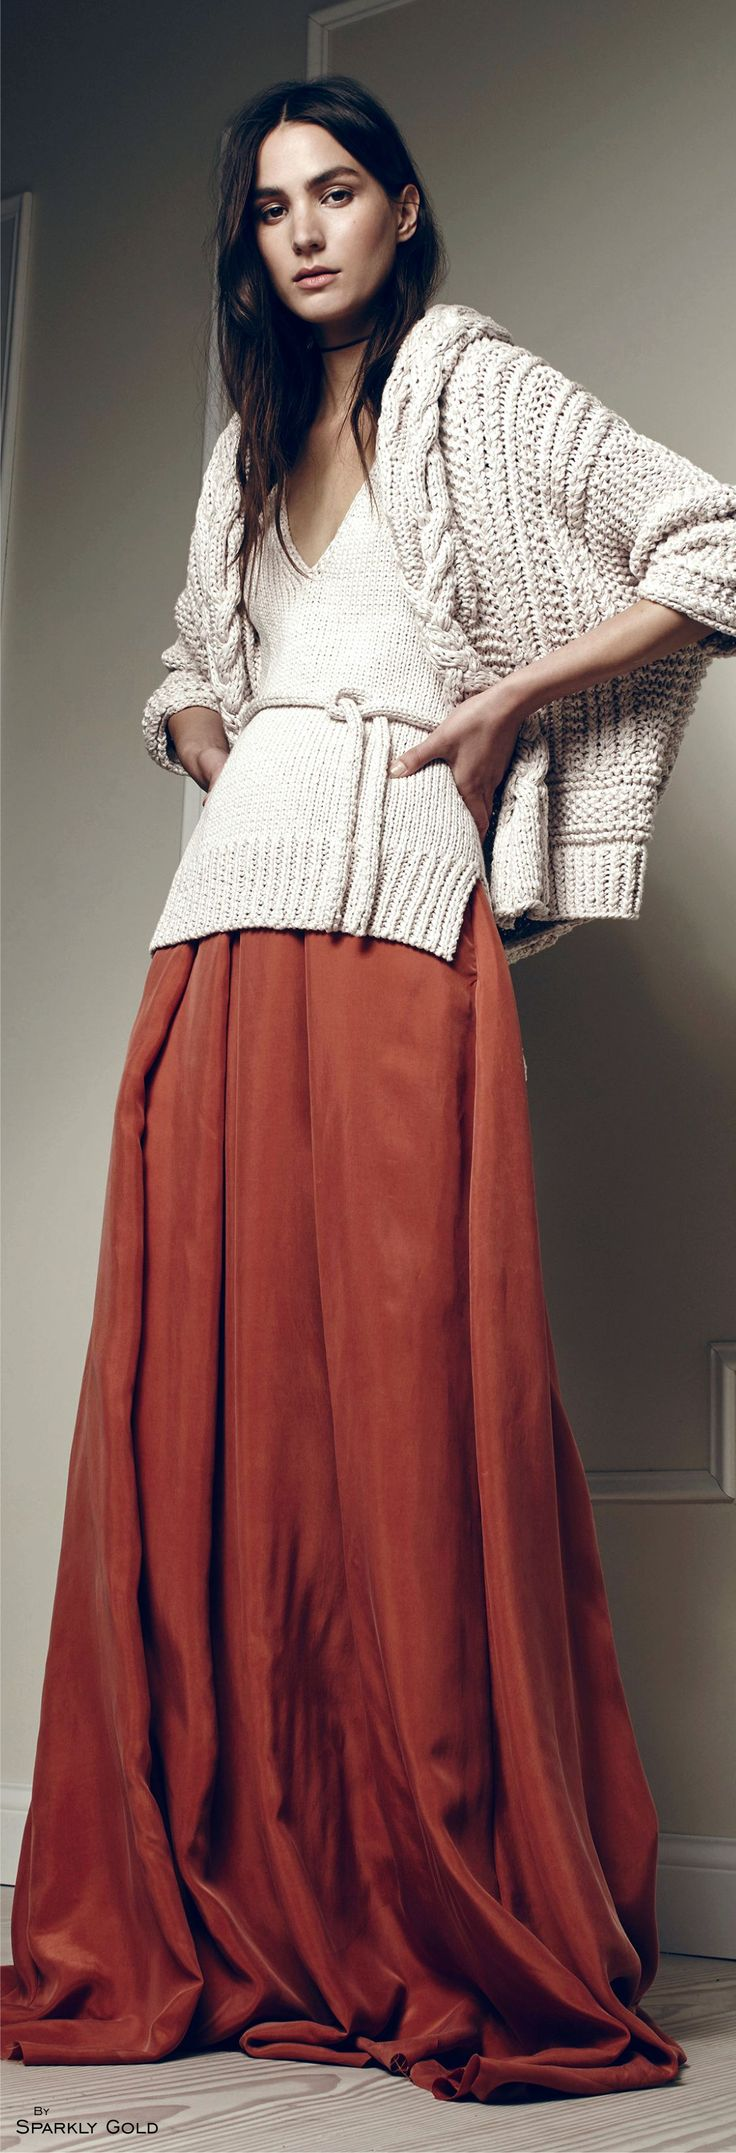 I have a Fisherman's cable knit sweater very similar to this, but no hood. Mine buttons down the front, and I love it!